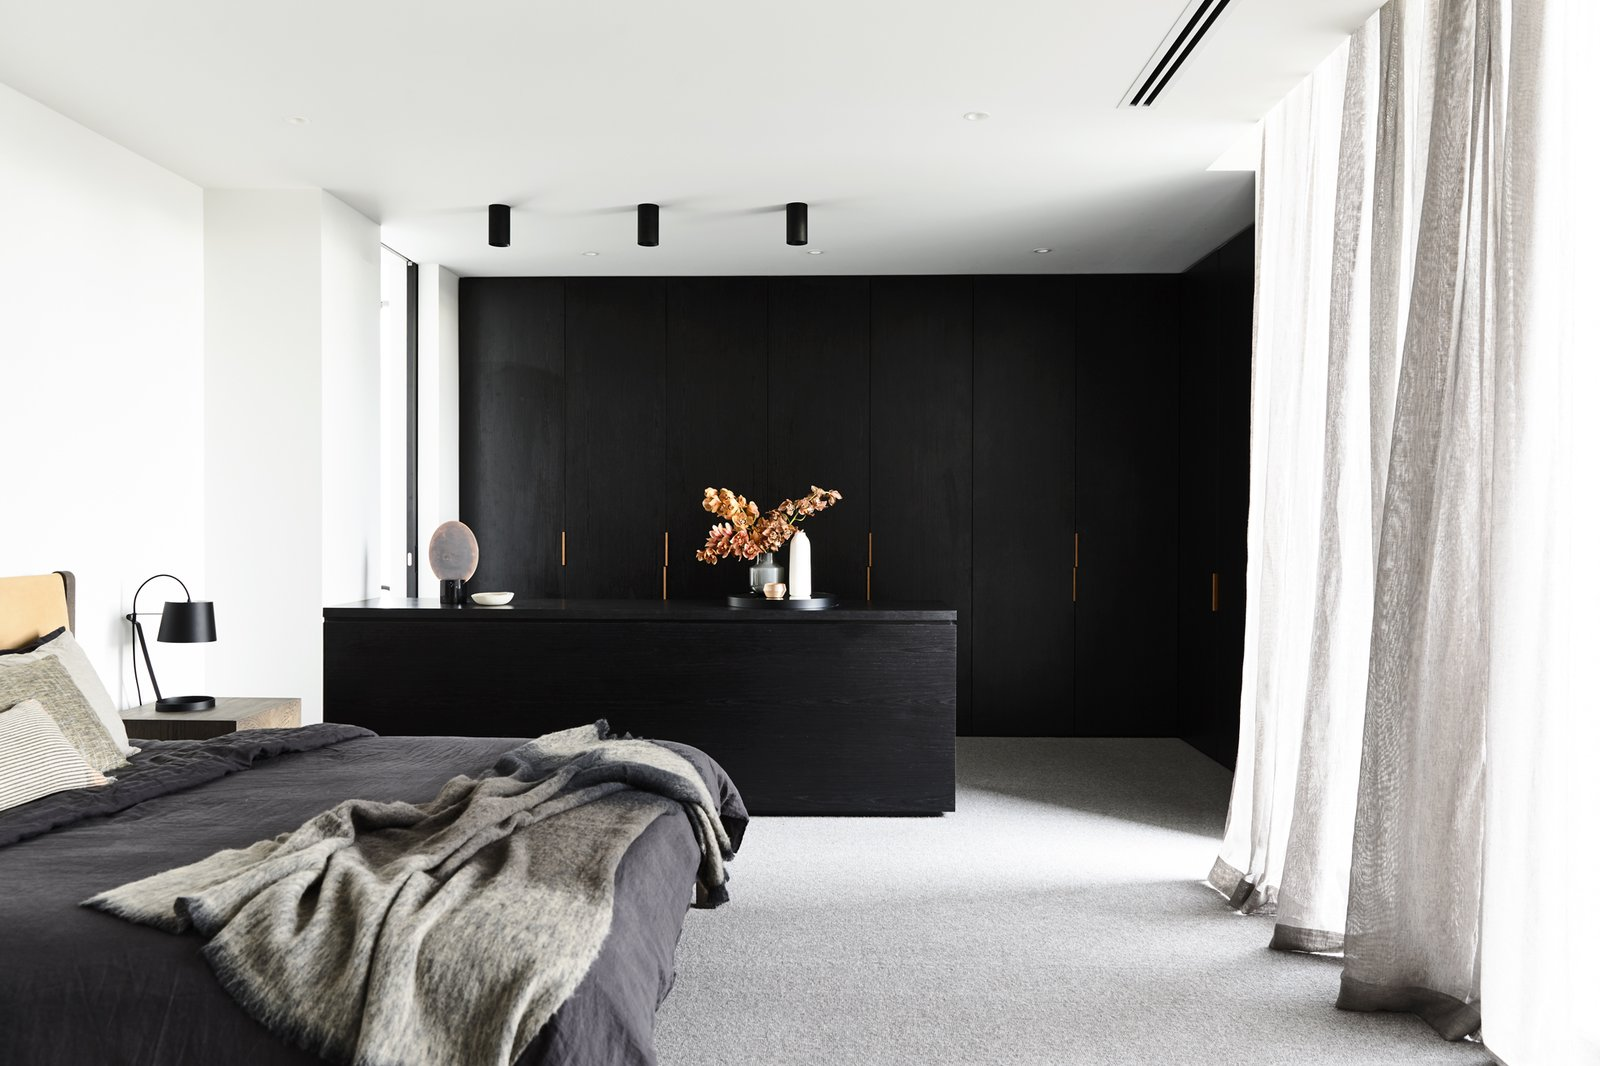 Bedroom, Wardrobe, Accent Lighting, Ceiling Lighting, Carpet Floor, and Bed Canny 'The New' Master Bedroom Robes  The New